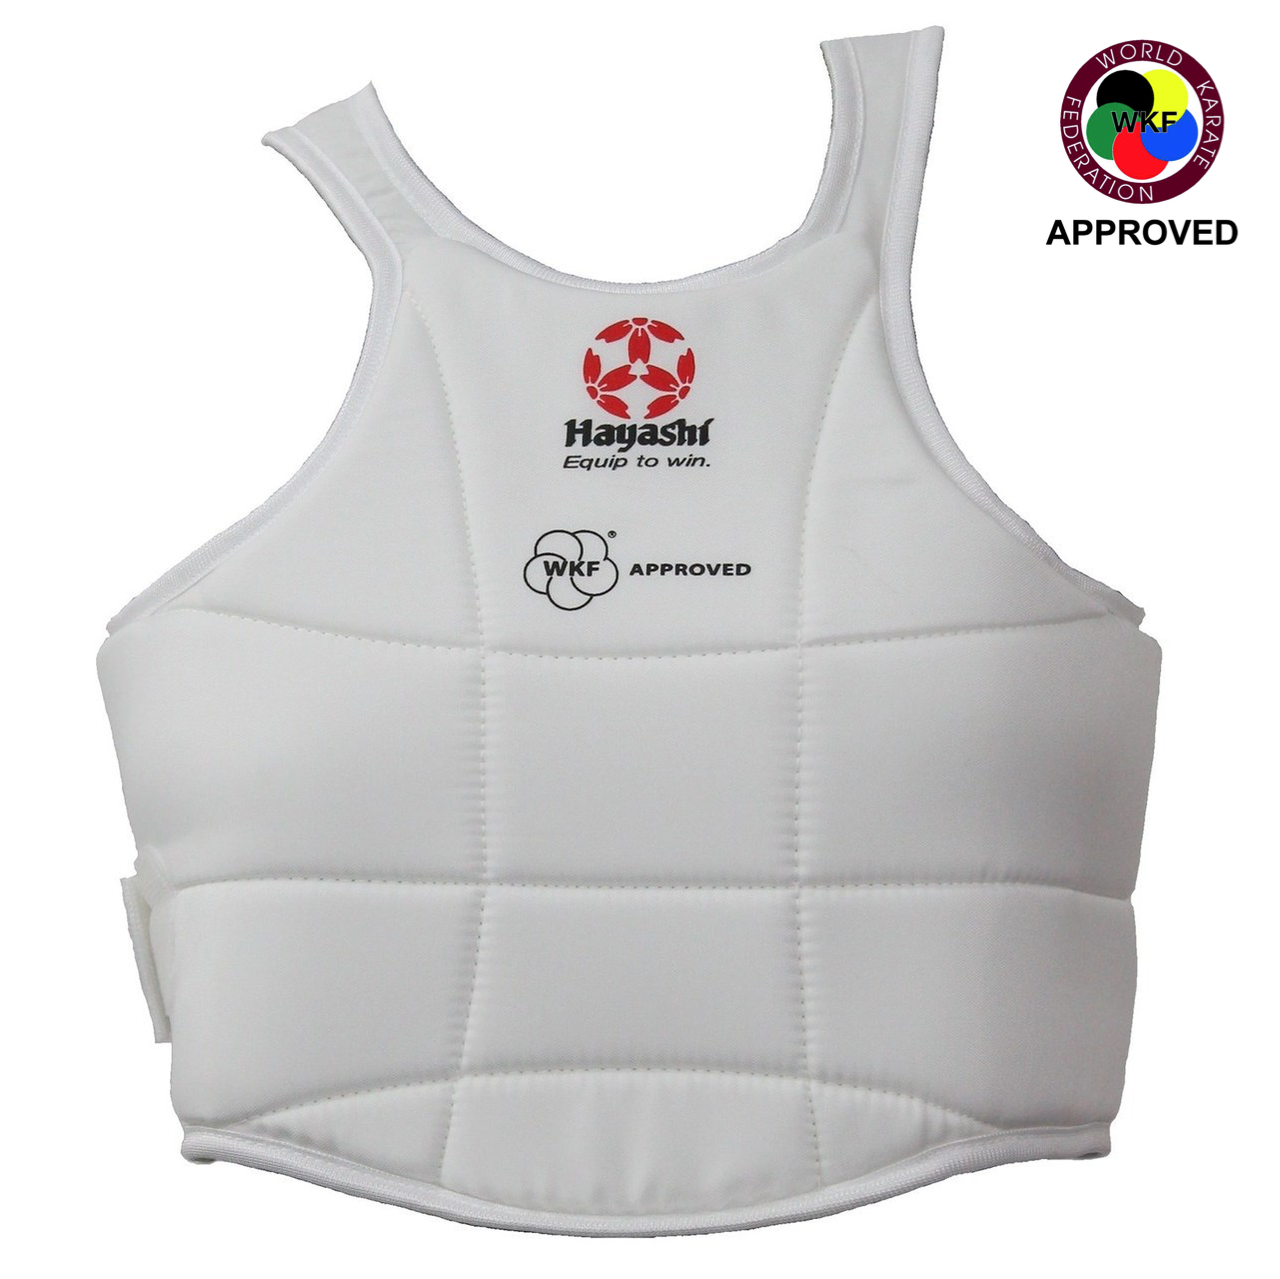 adidas Karate WKF Approved Sparring Body Protector